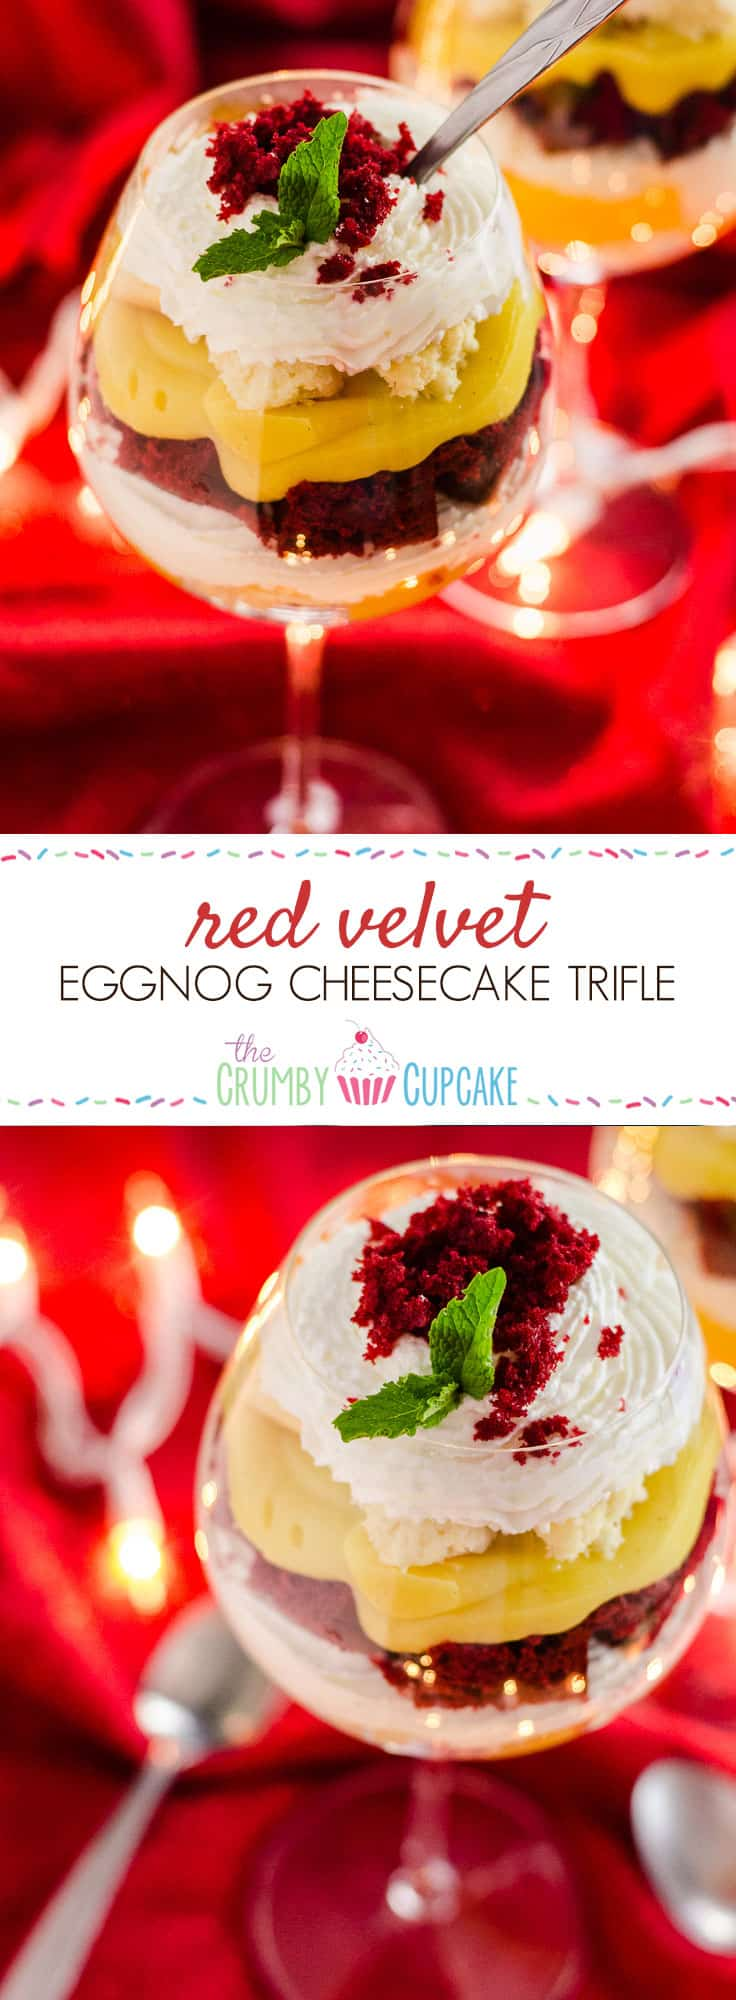 Red Velvet Eggnog Cheesecake Trifle is a quick, easy, stunning last-minute dessert, made with festive red velvet cake, fresh eggnog pudding, and horchata-spiked whipped cream!